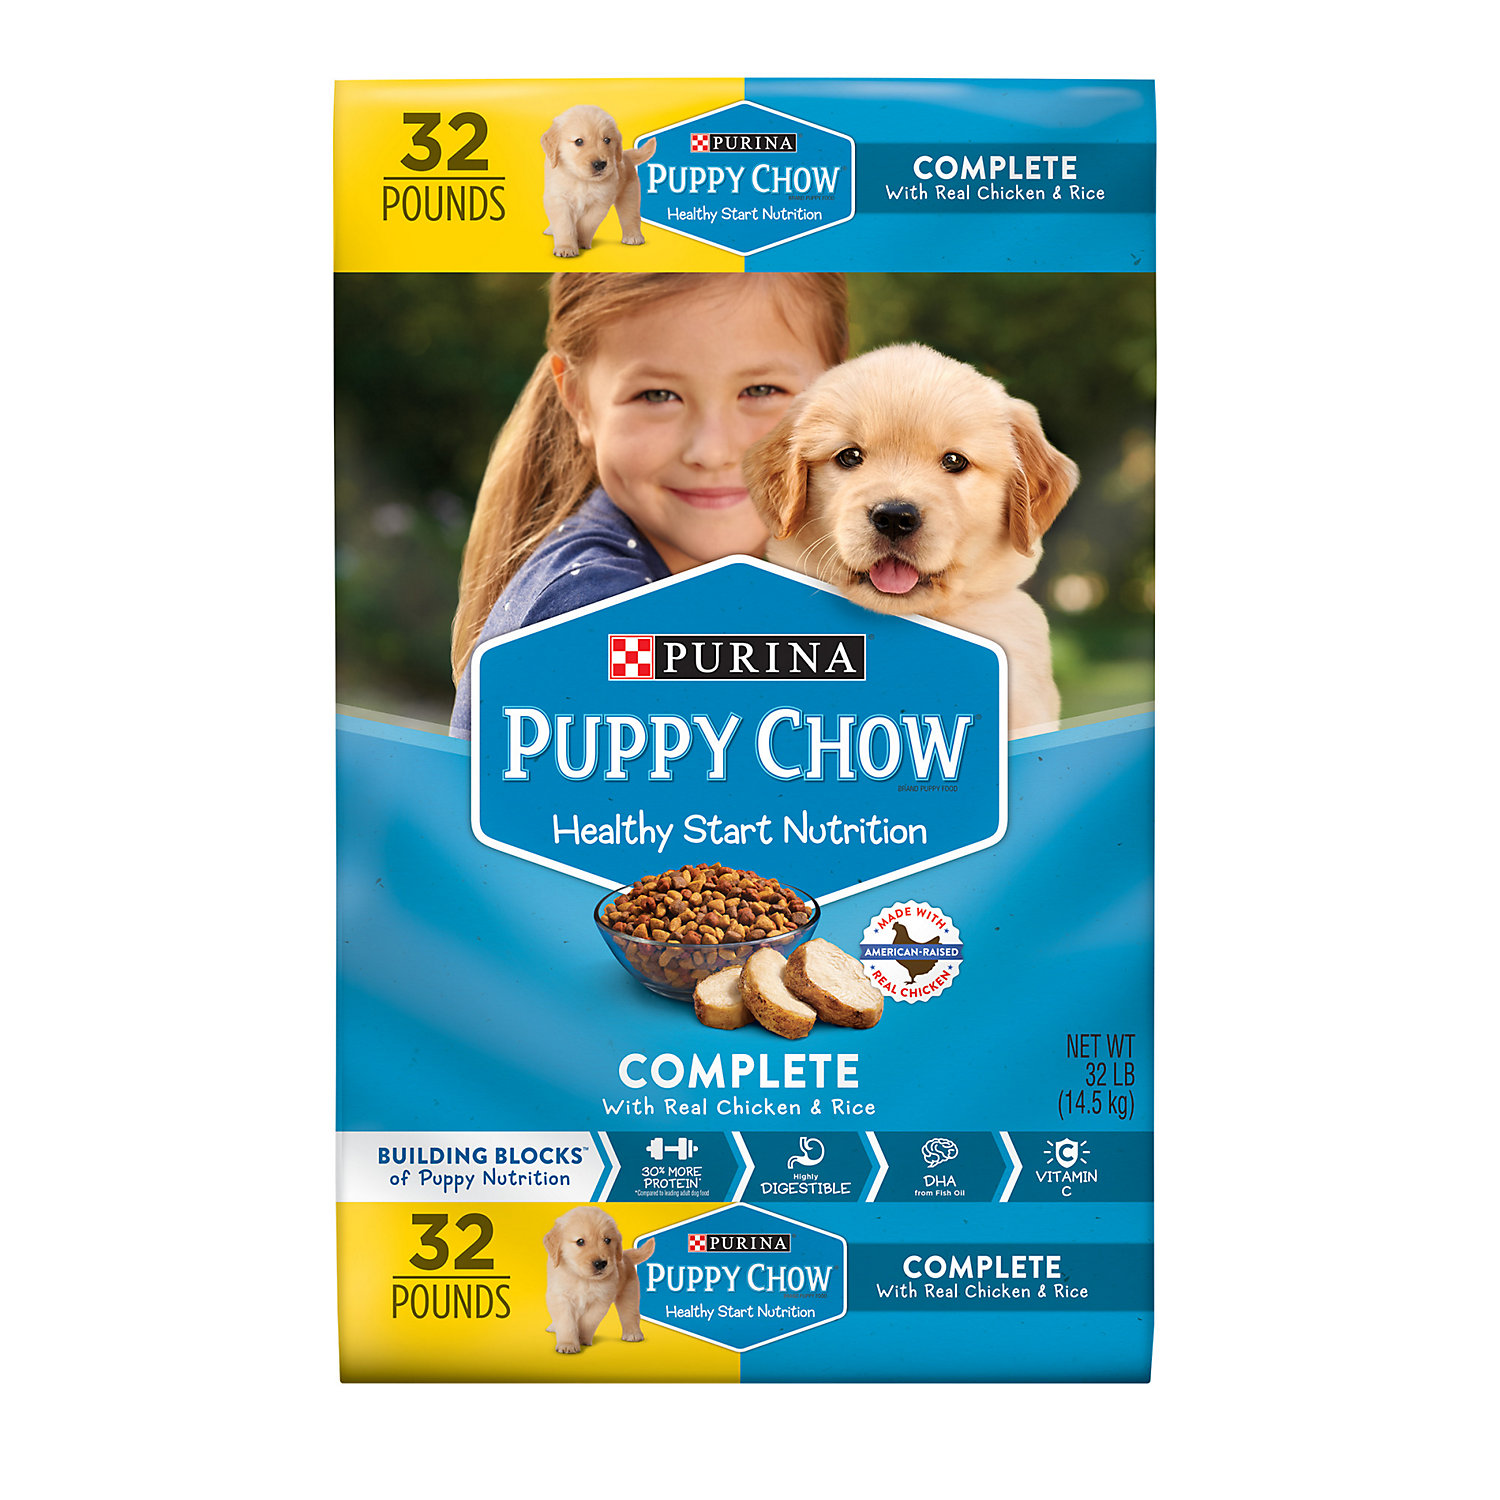 Purina Puppy Chow Complete Balanced Puppy Food 32 Lbs.